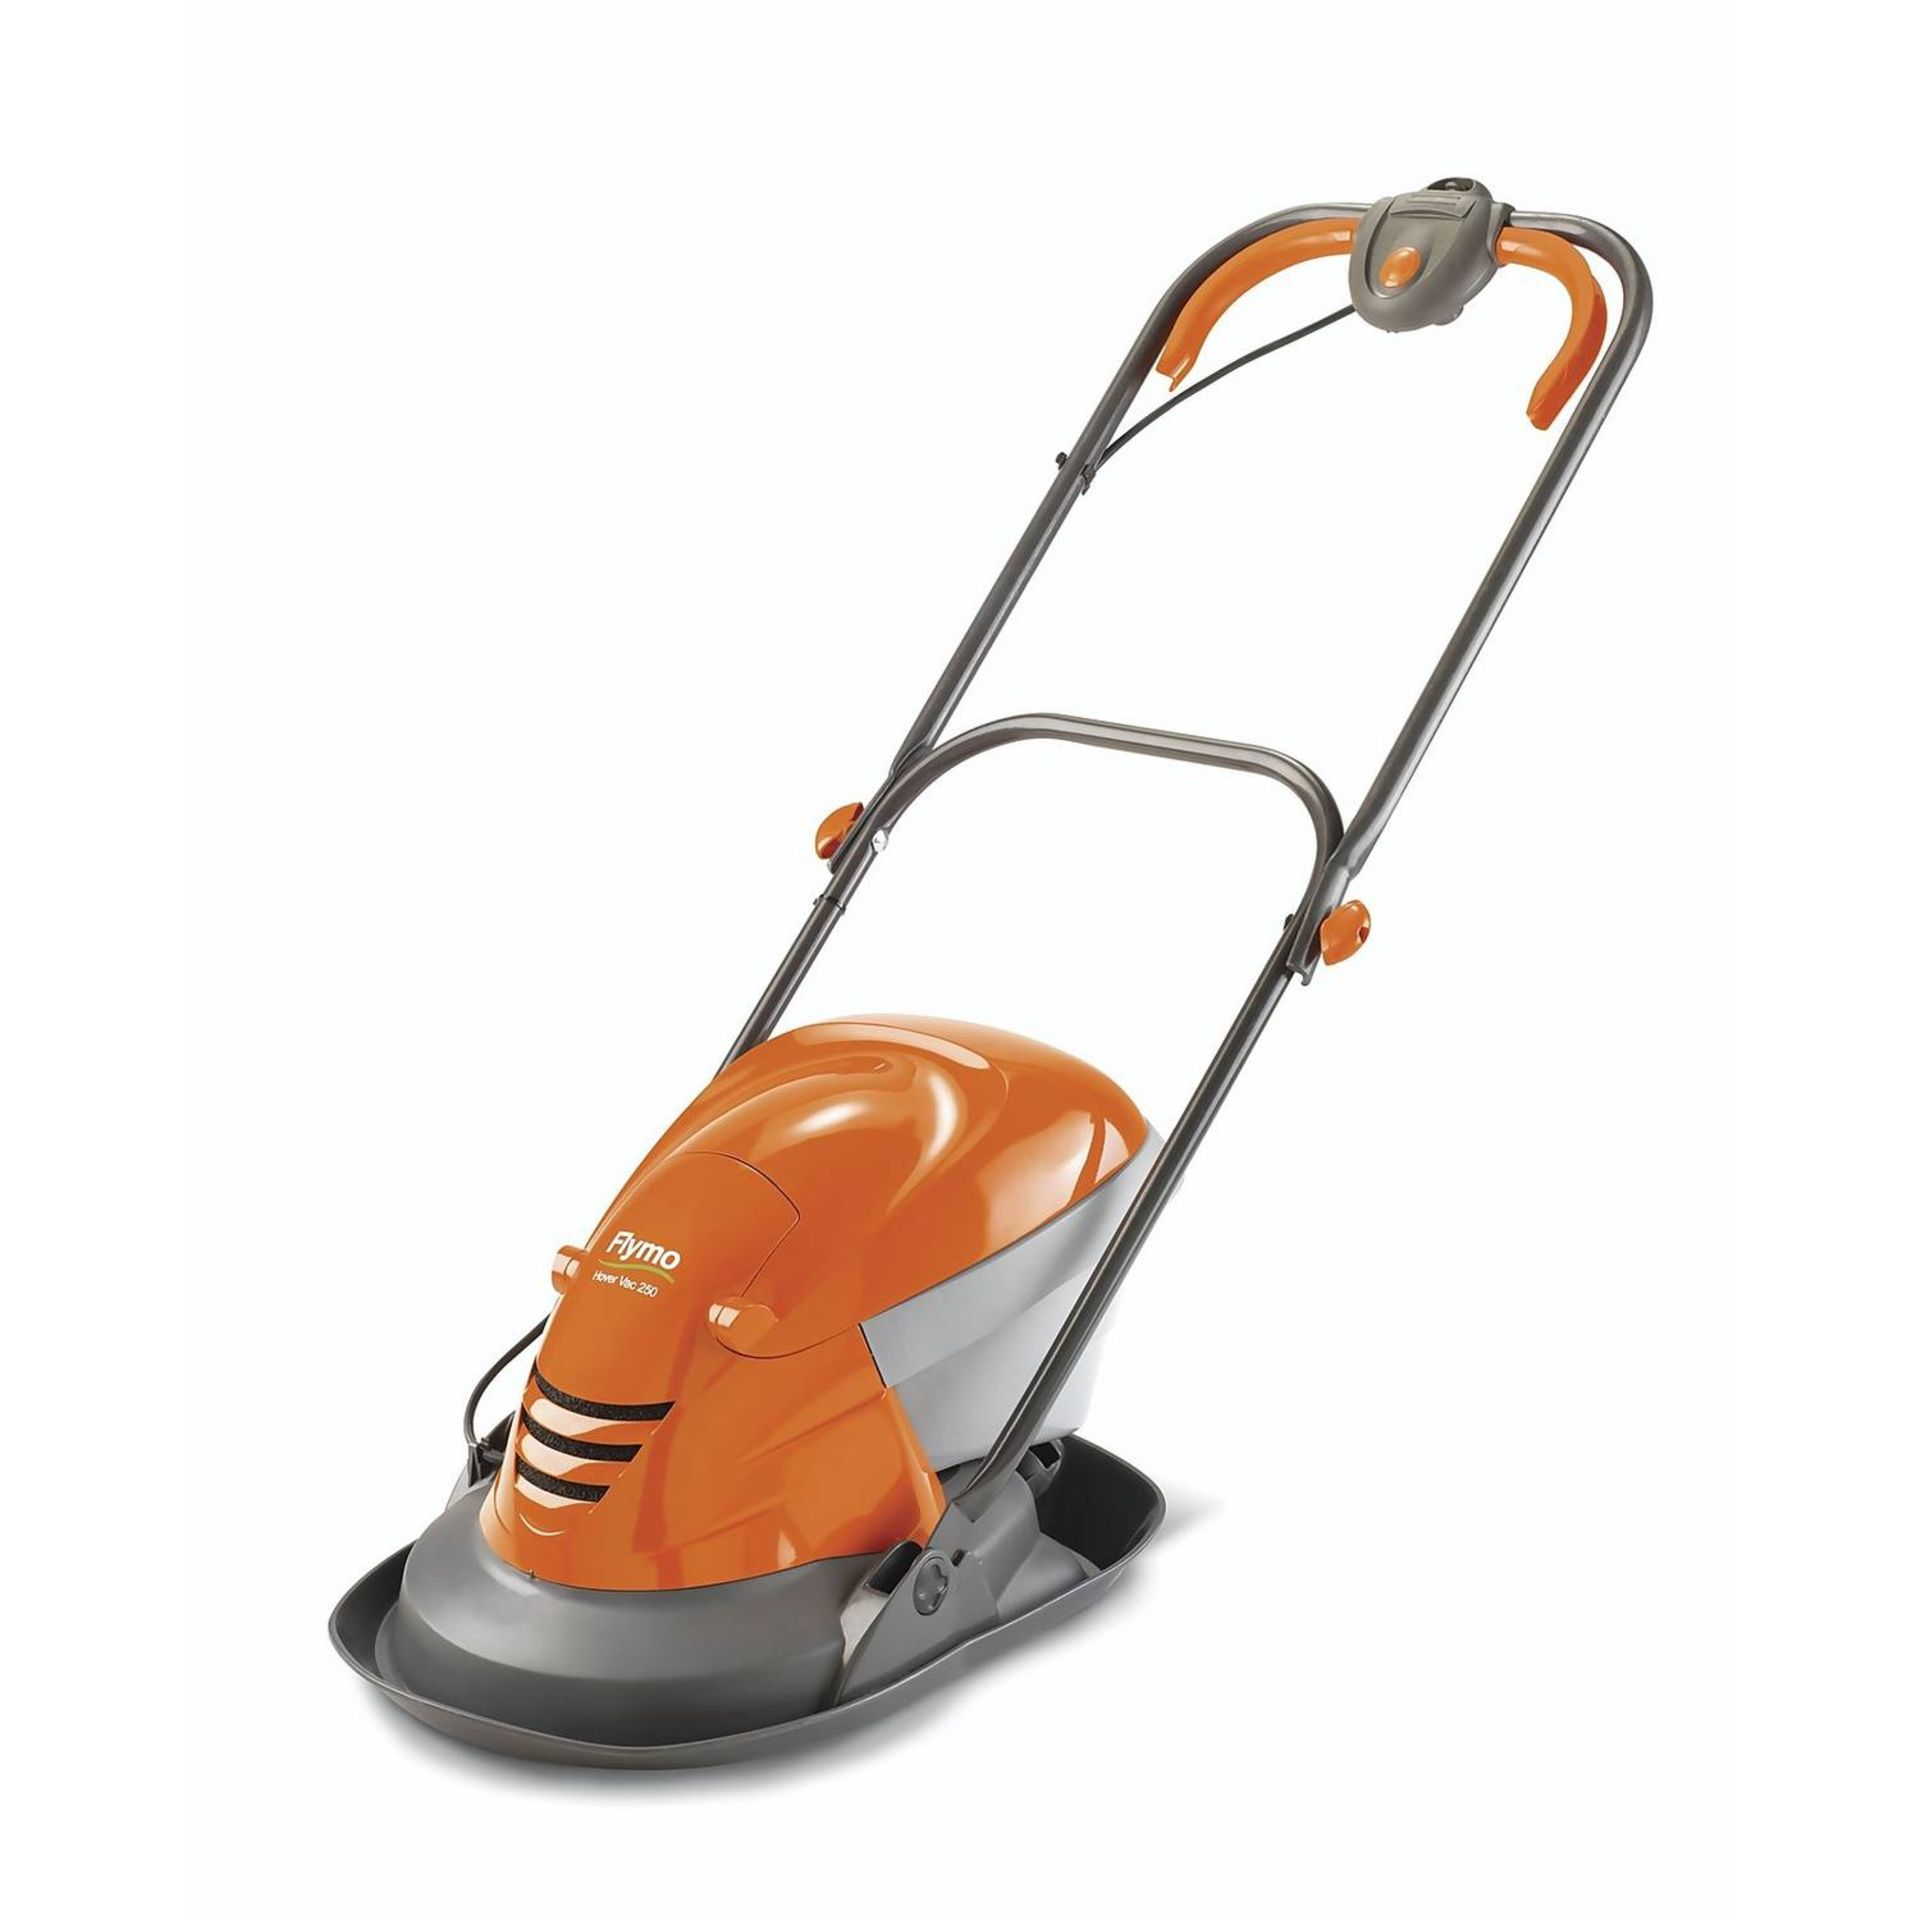 (P2) 1x Flymo HoverVac 250 RRP £80. Unit Appears Clean, Unused & As New.